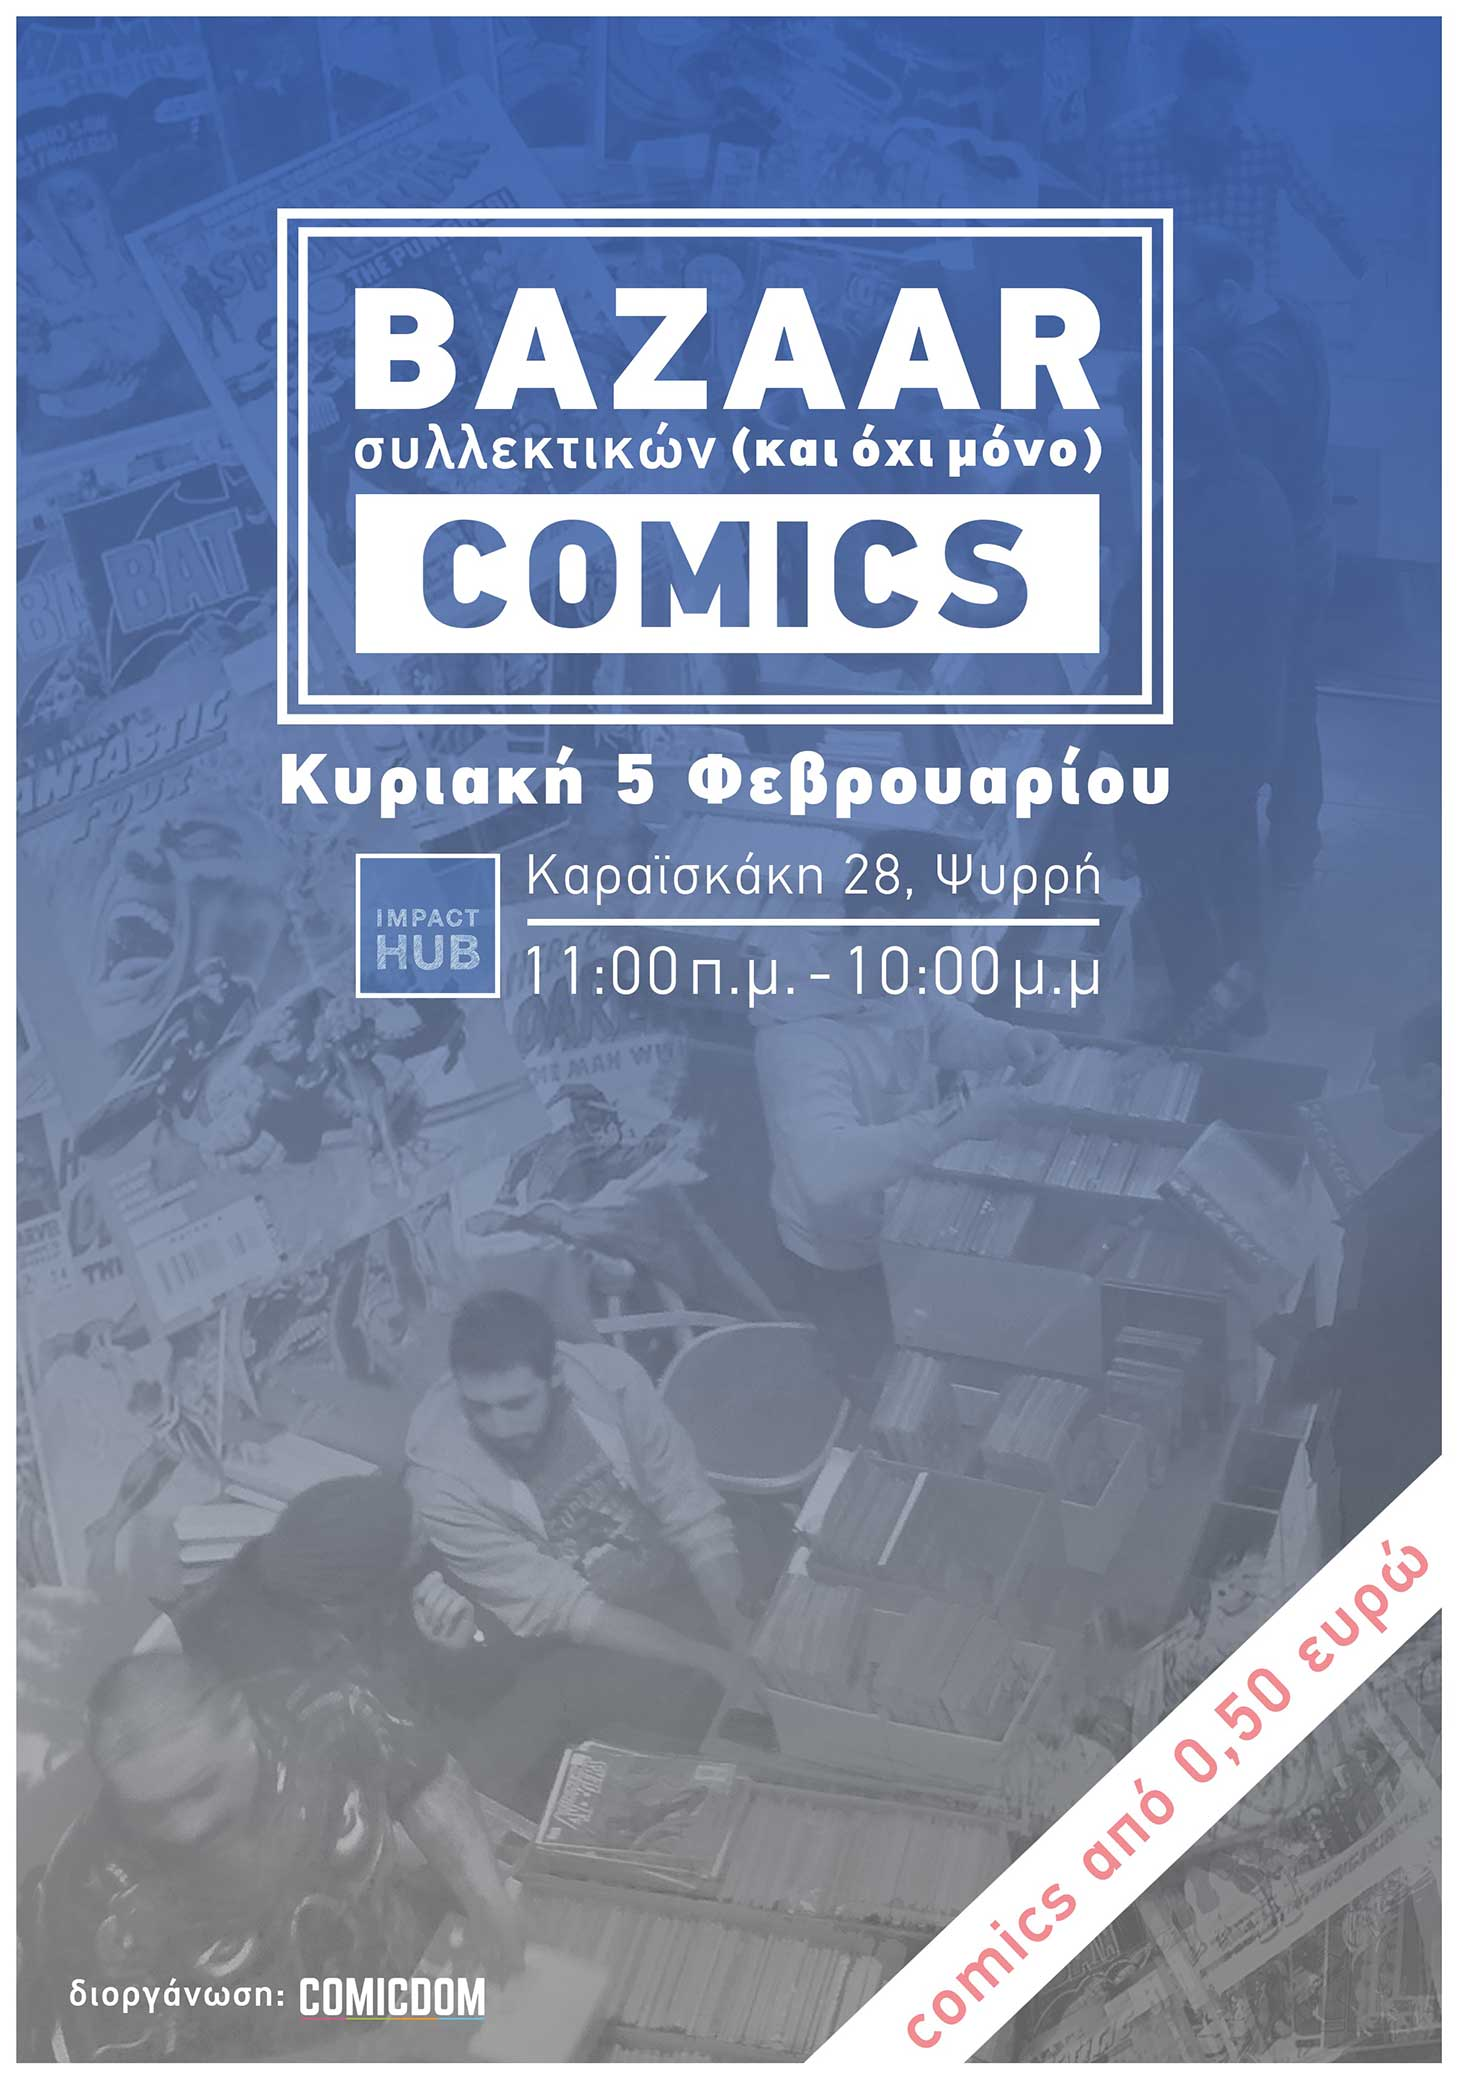 Comicdom Bazaar Winter 2017